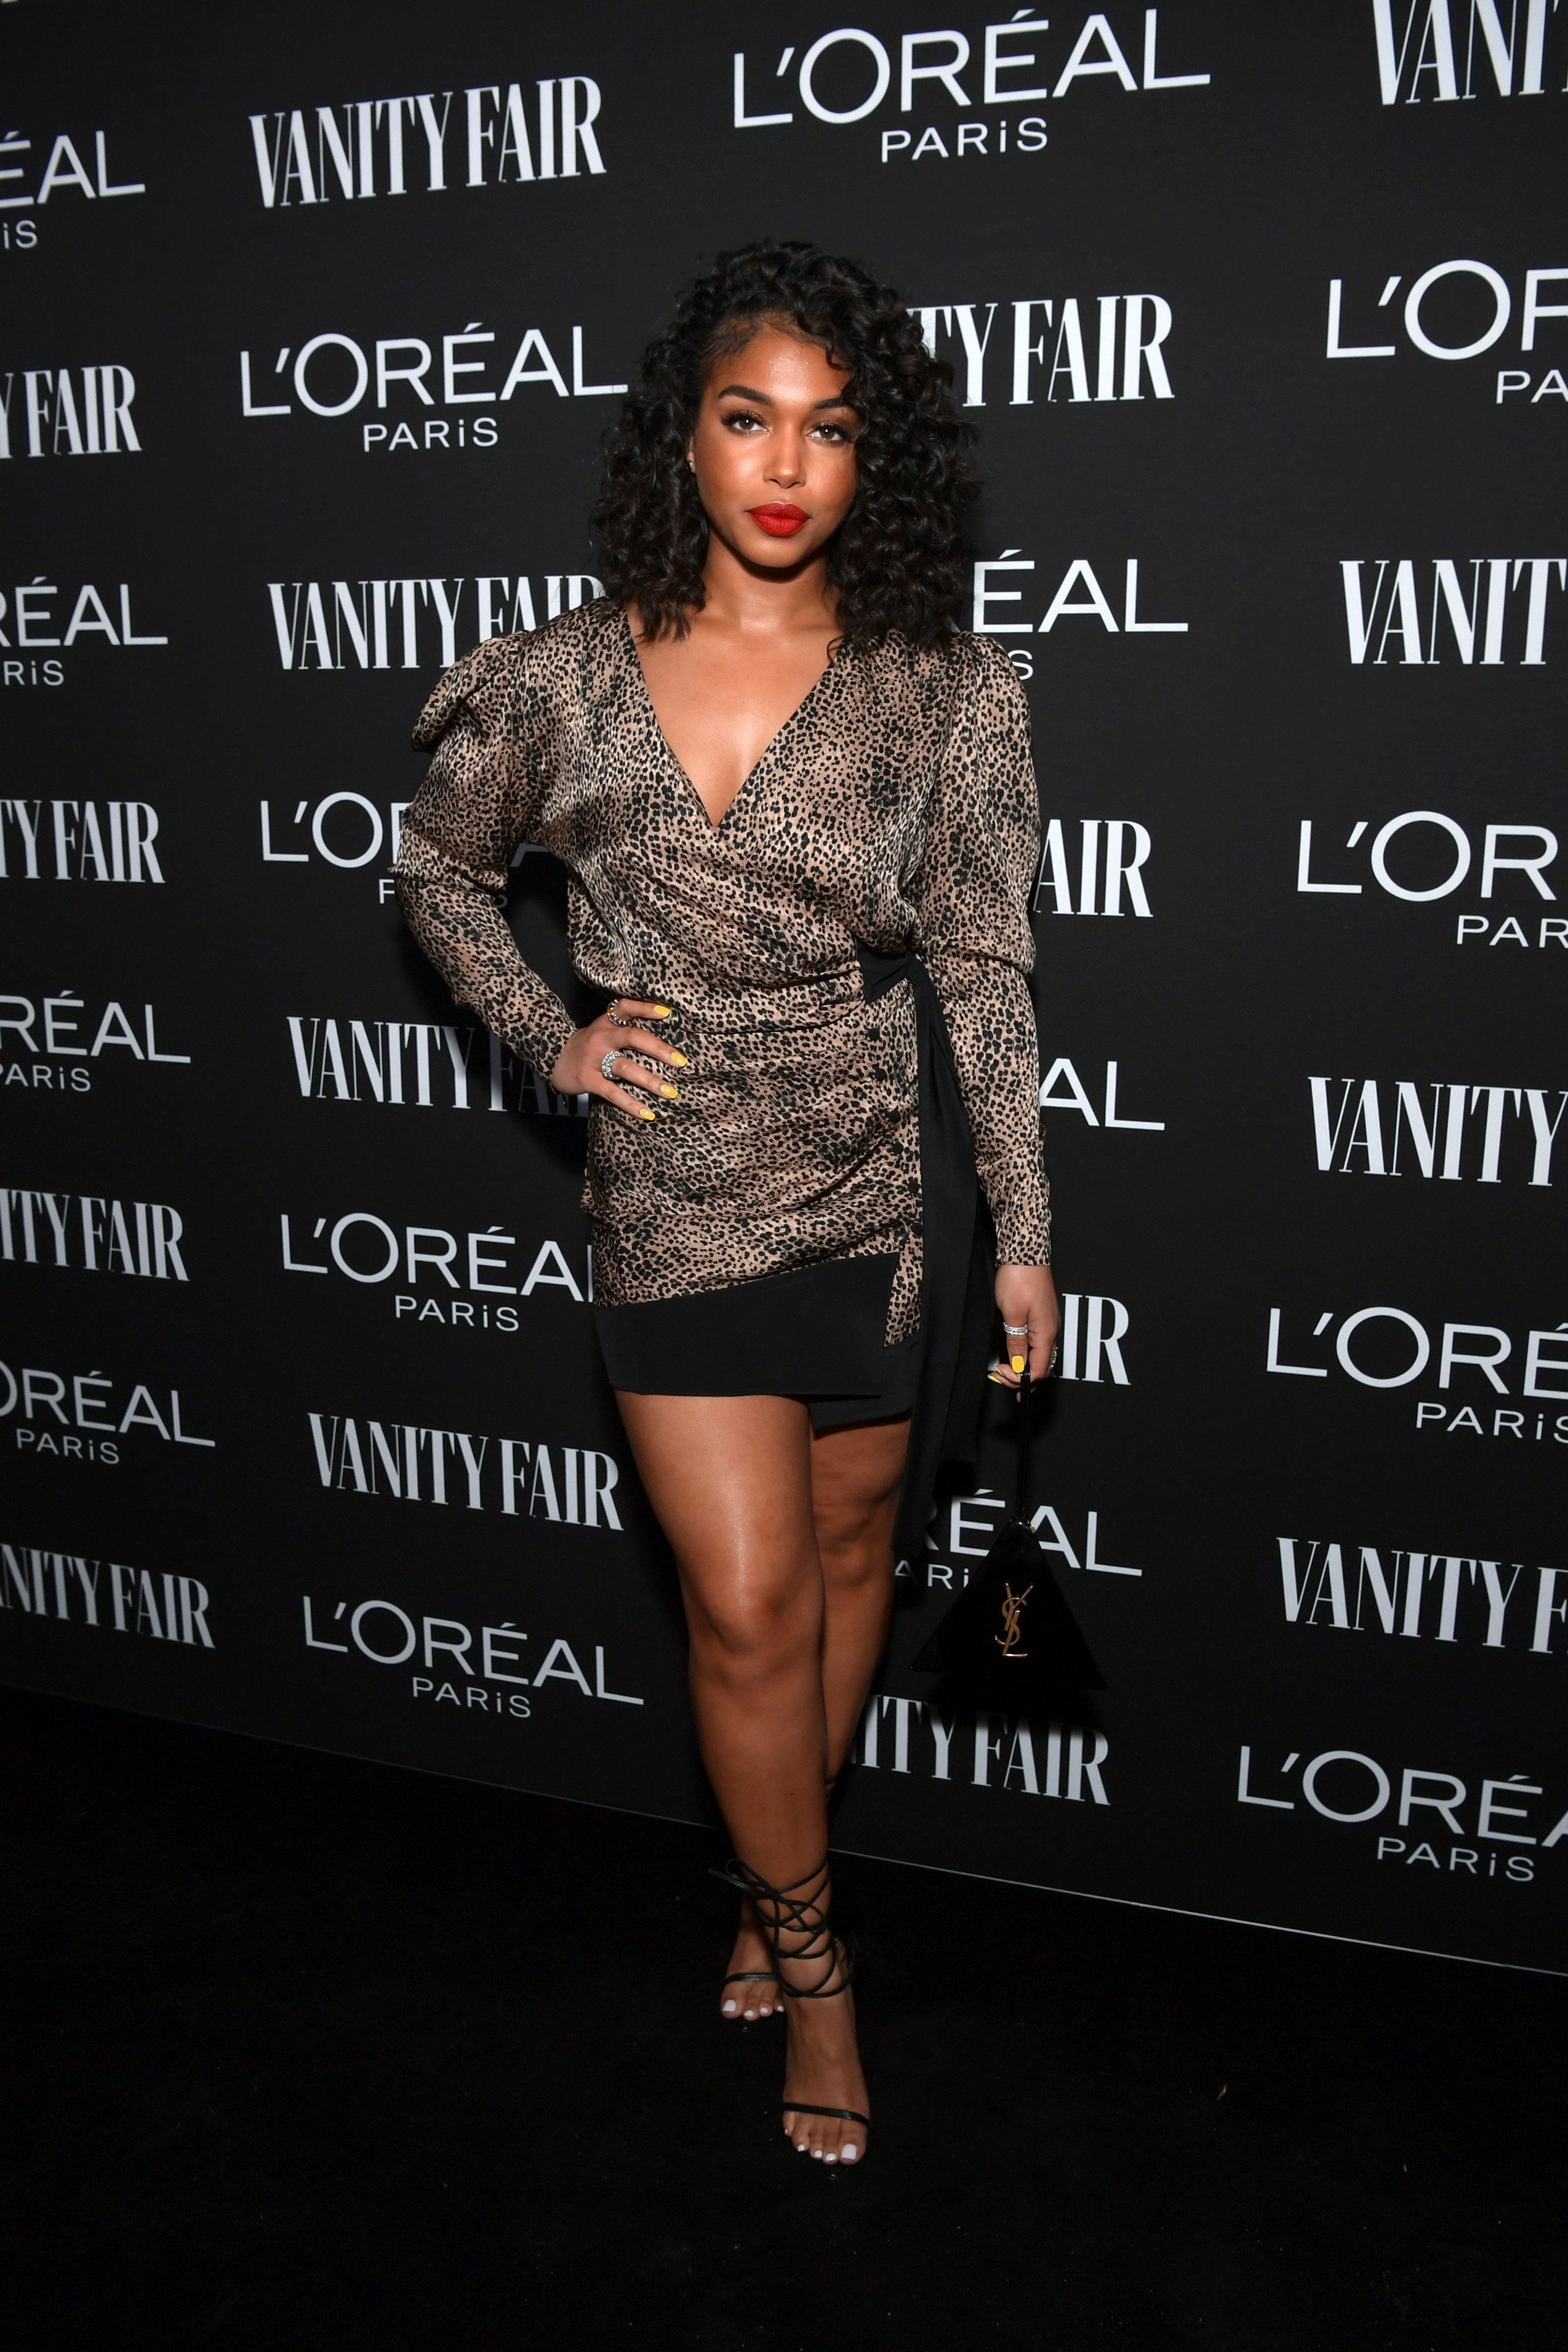 Lori Harvey is seen as Vanity Fair and L'Oréal Paris Celebrate New Hollywood on February 19, 2019 Photo: Getty Images